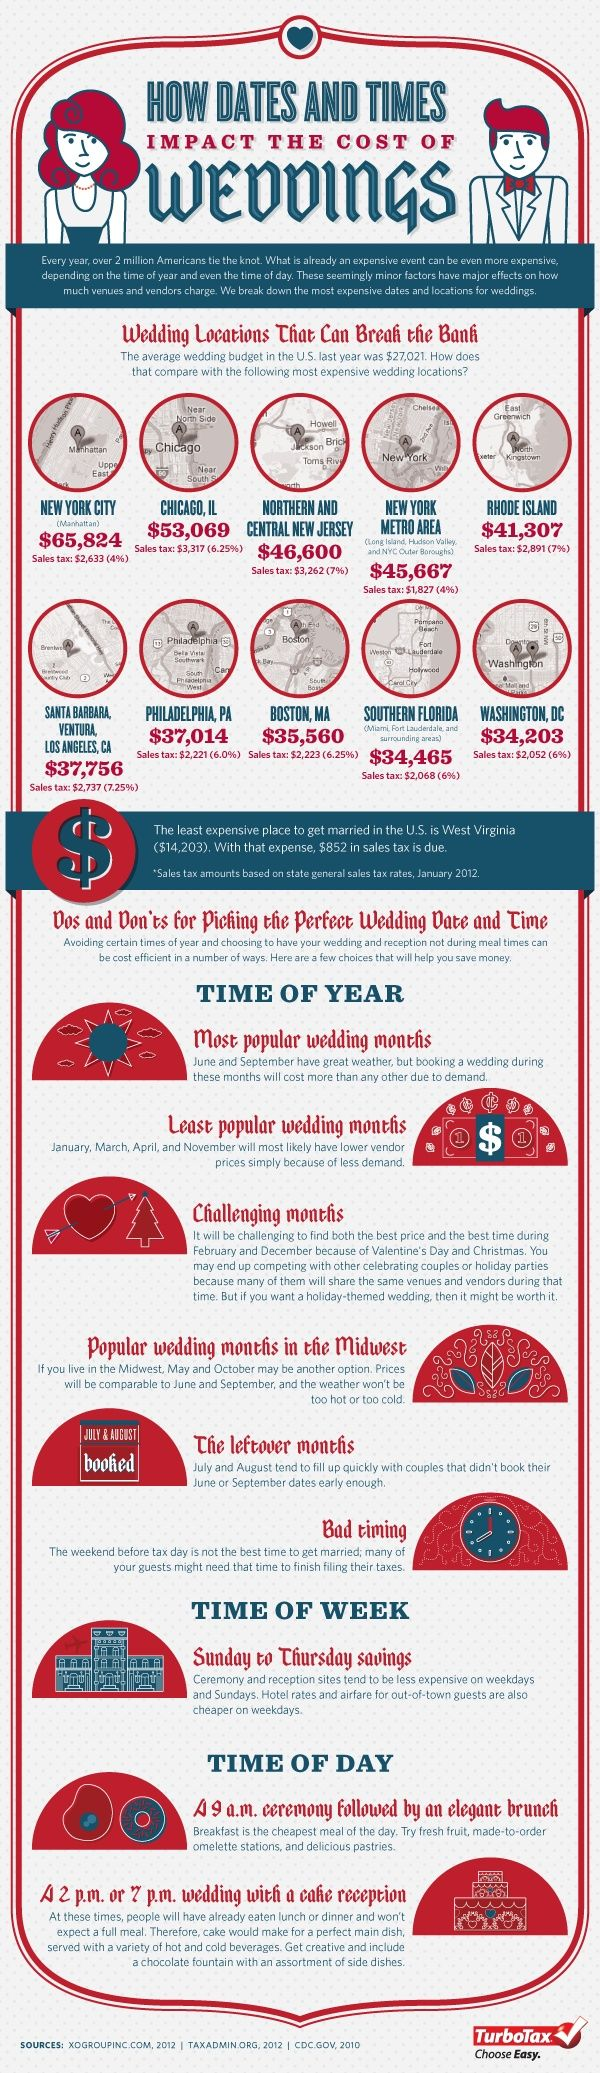 Weddings: How Dates And Times Impact Wedding Costs